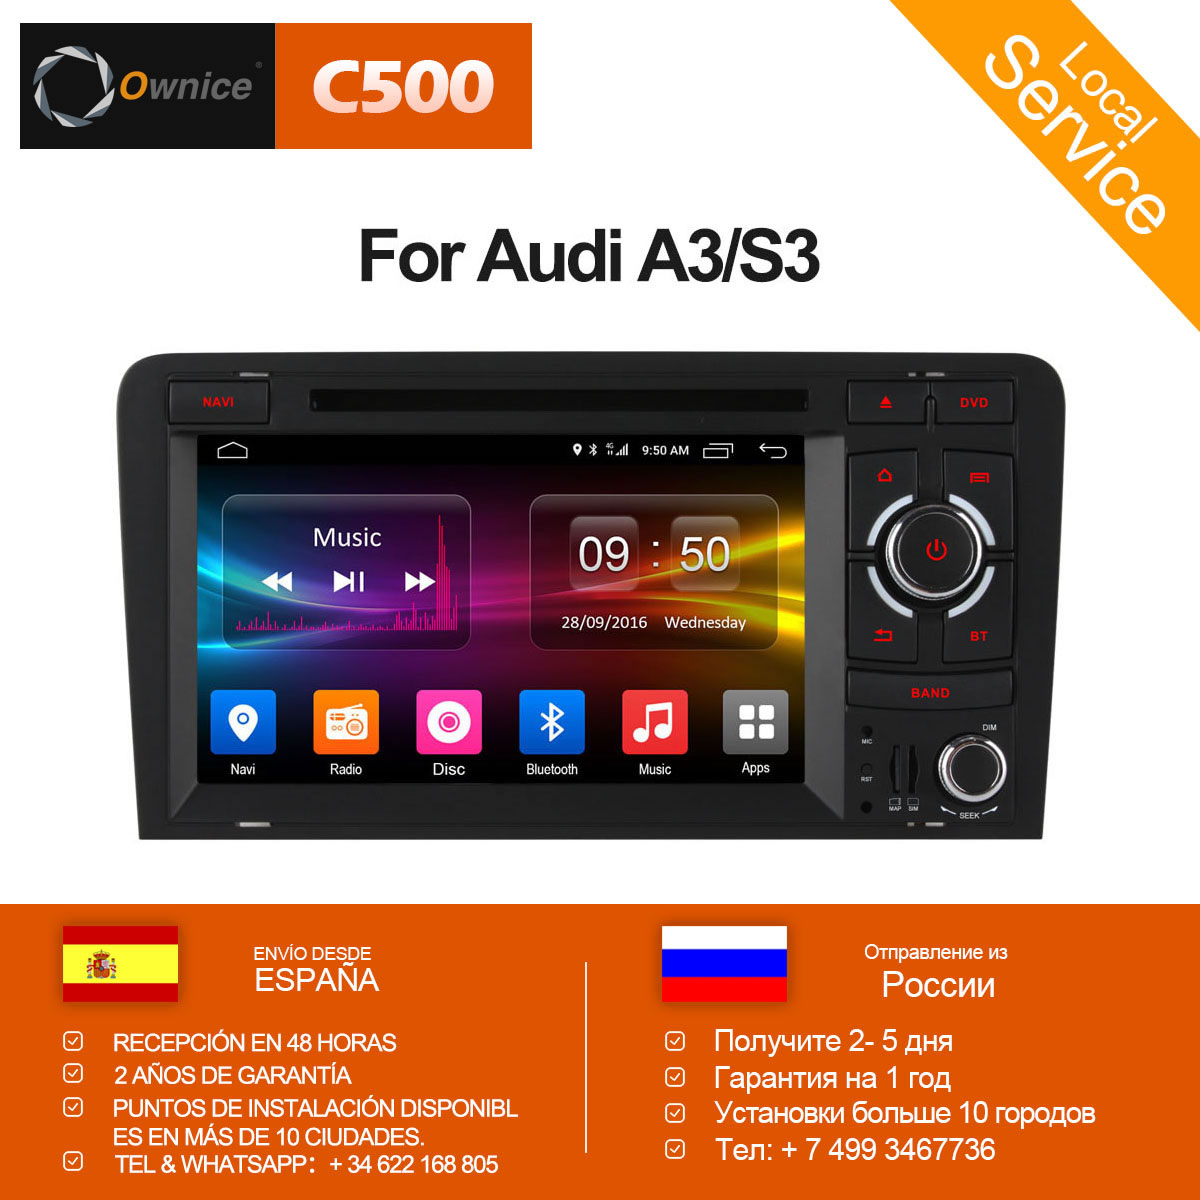 Ownice C500 Octa Core 4G SIM LTE Android 6.0 2 Din 7 Car DVD Player For Audi A3 S3 2004-2011 Radio GPS Navi BT 2GB RAM 32GB ROM ownice c500 4g sim lte octa 8 core android 6 0 for kia ceed 2013 2015 car dvd player gps navi radio wifi 4g bt 2gb ram 32g rom